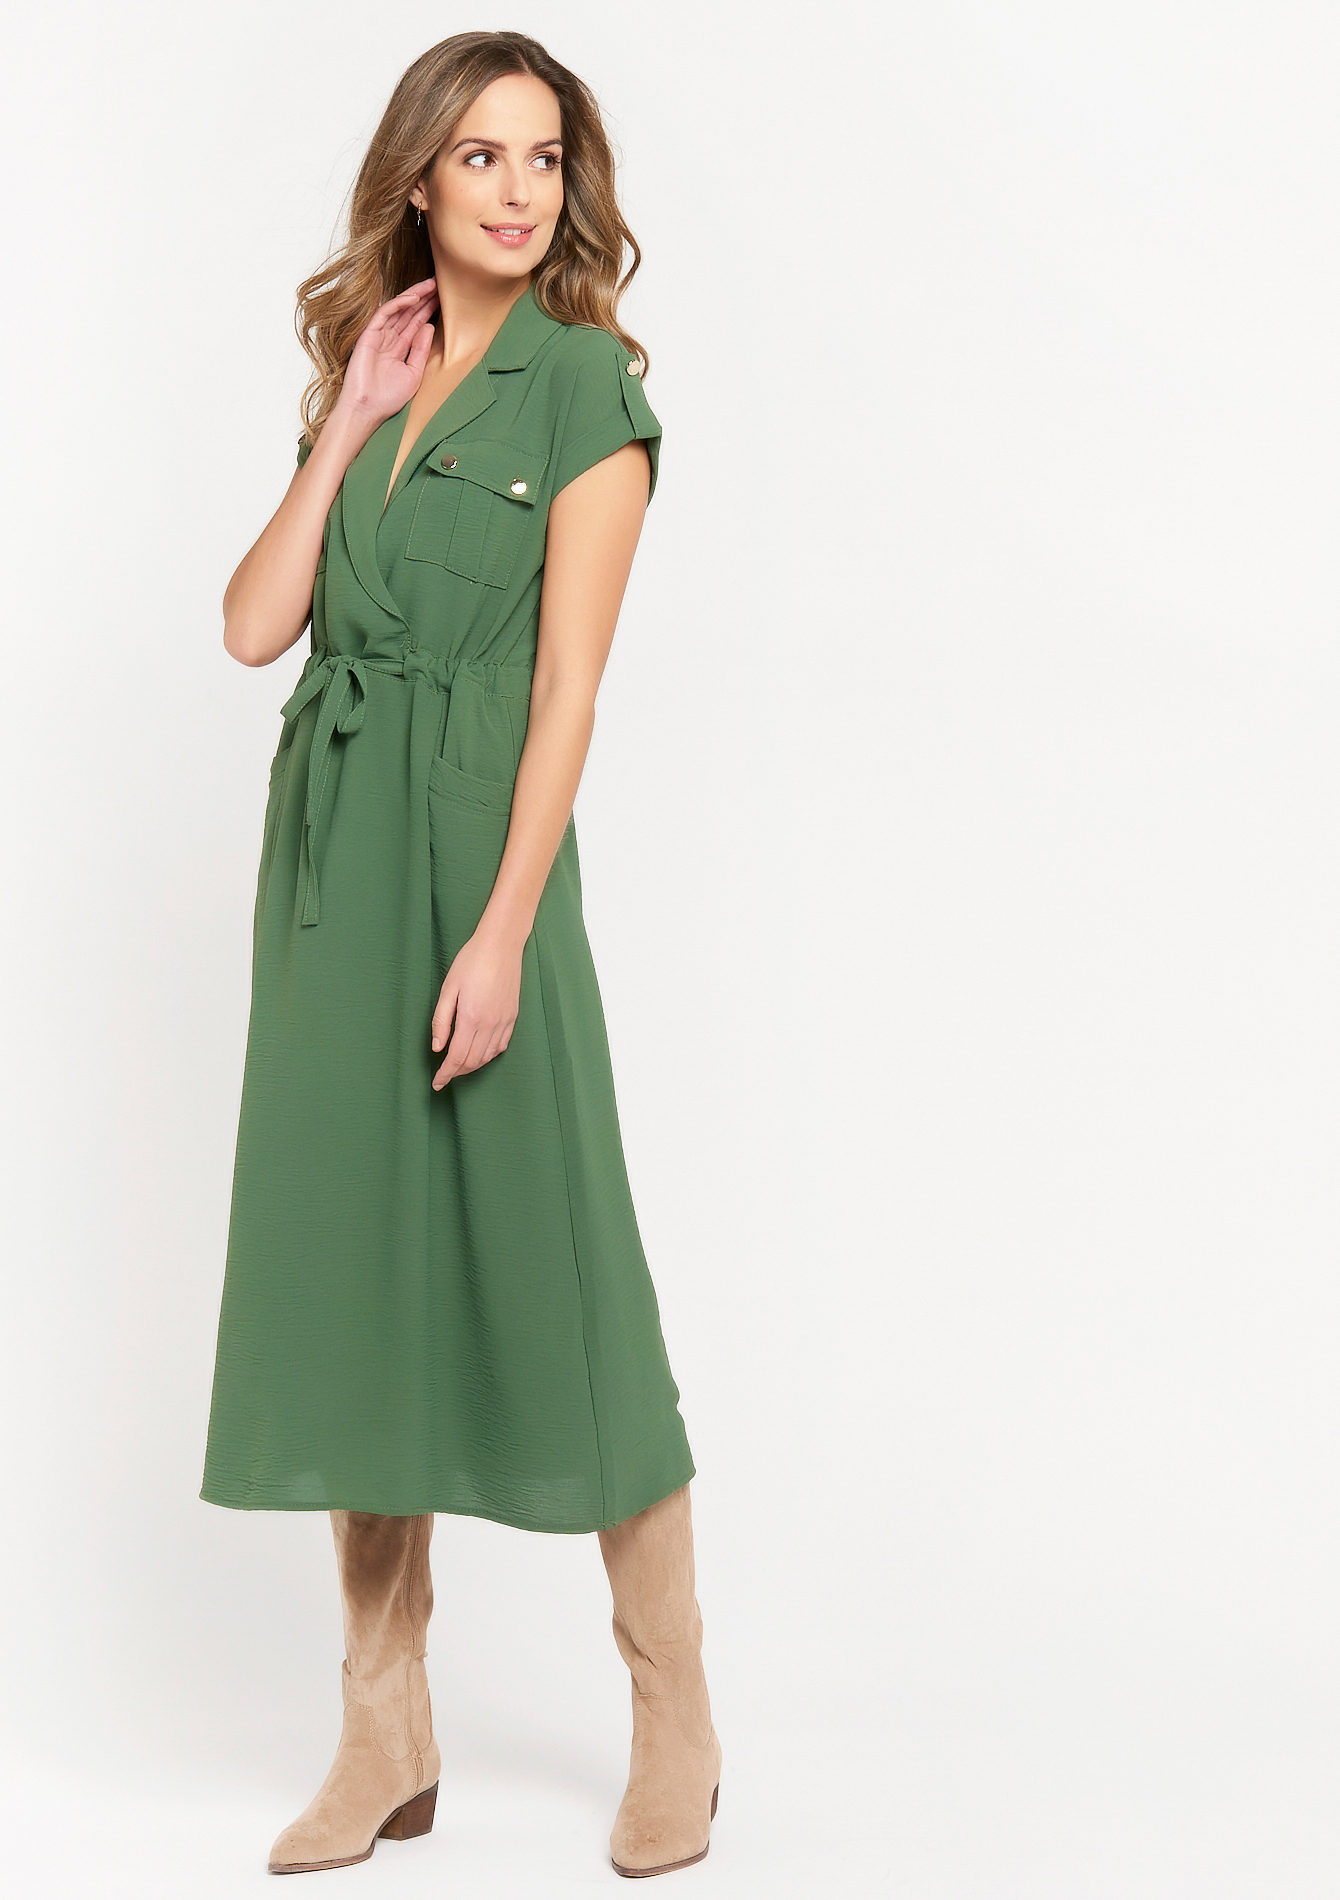 Maxi dress with belt and long collar - KHAKI TILLEUL - 08601286_4406